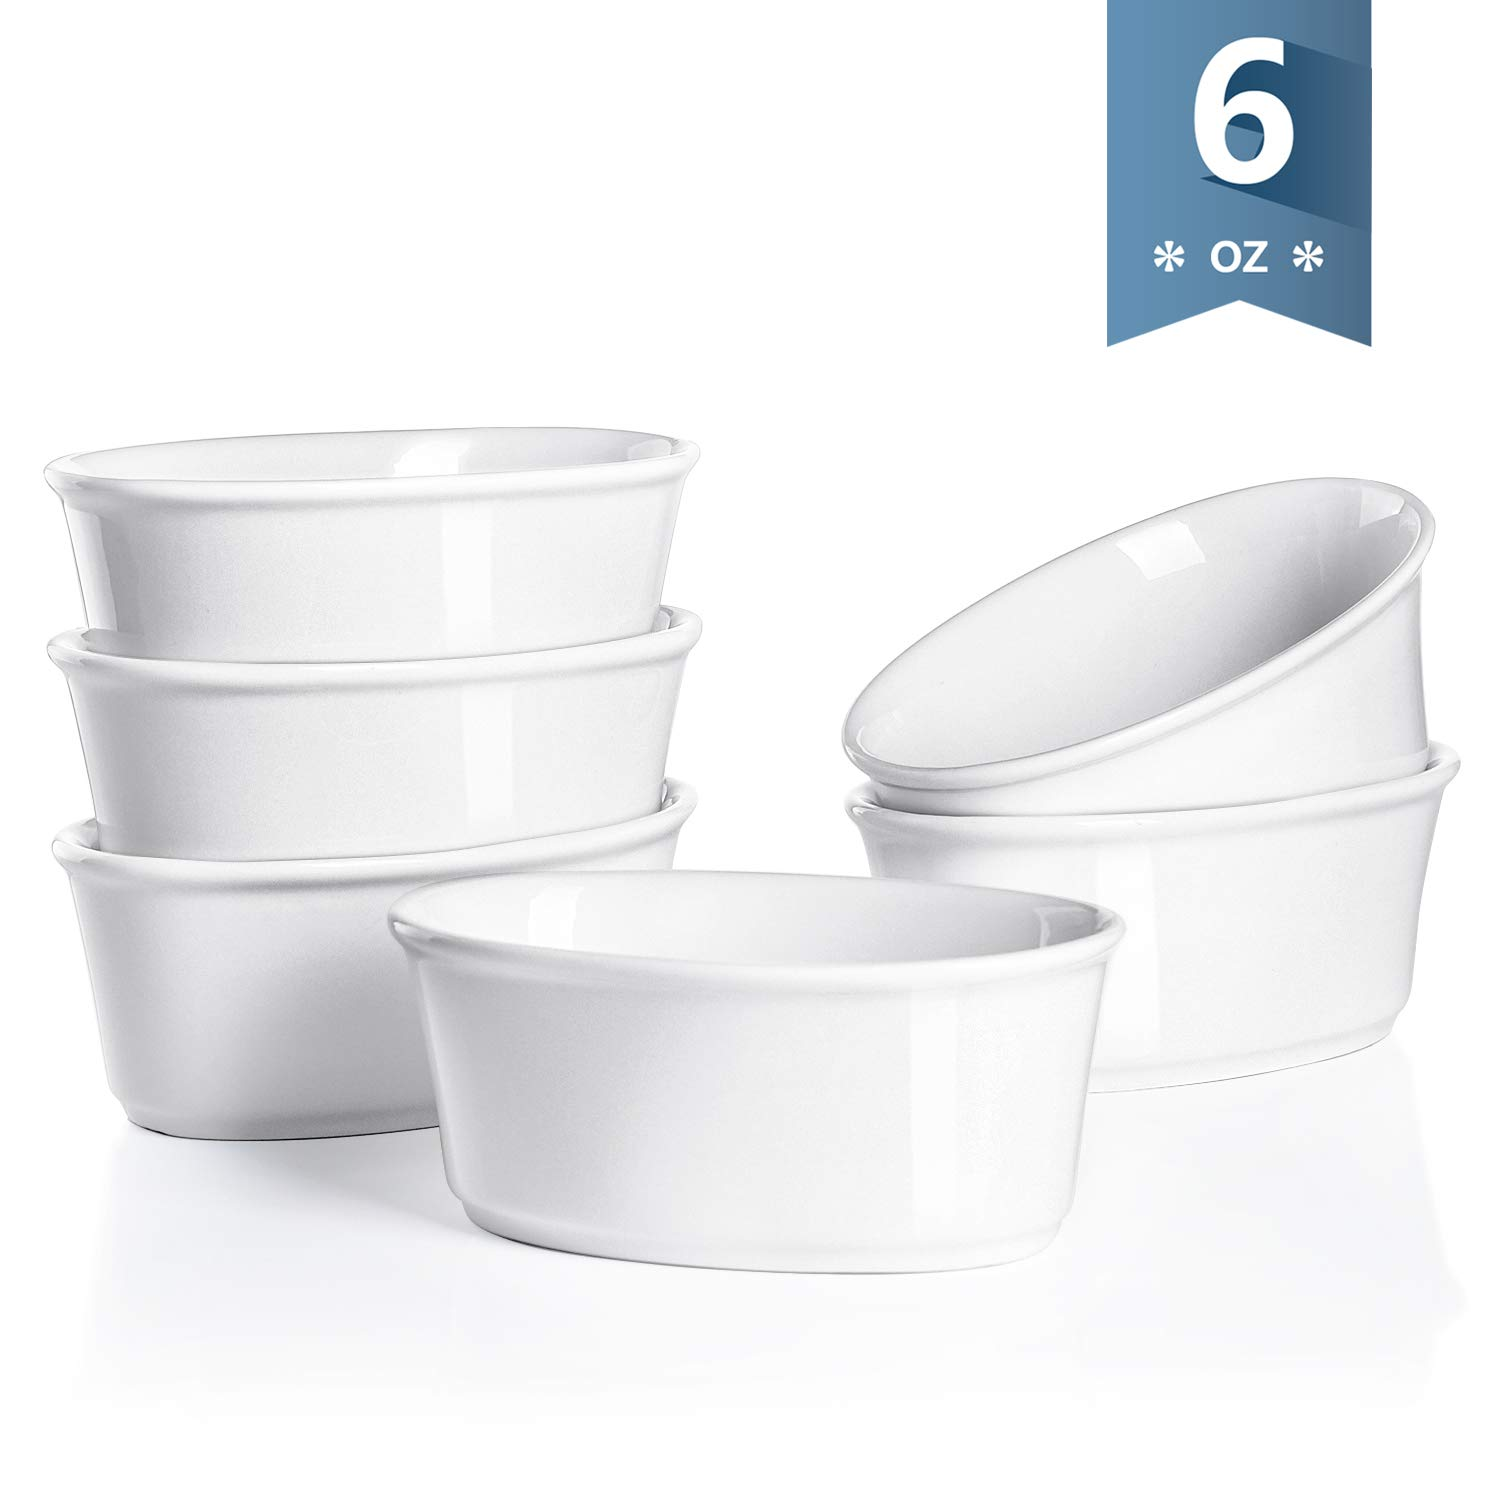 Sweese 506.001 Porcelain Souffle Dishes 6 Ounce, Oval Ramekins for Baking, Set of 6, White